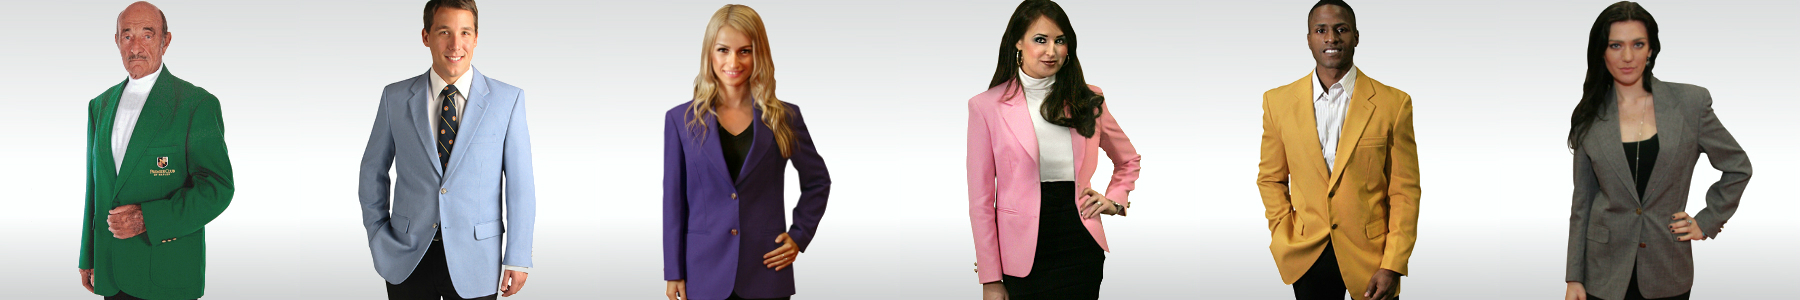 Uniform Blazers for Men & Women